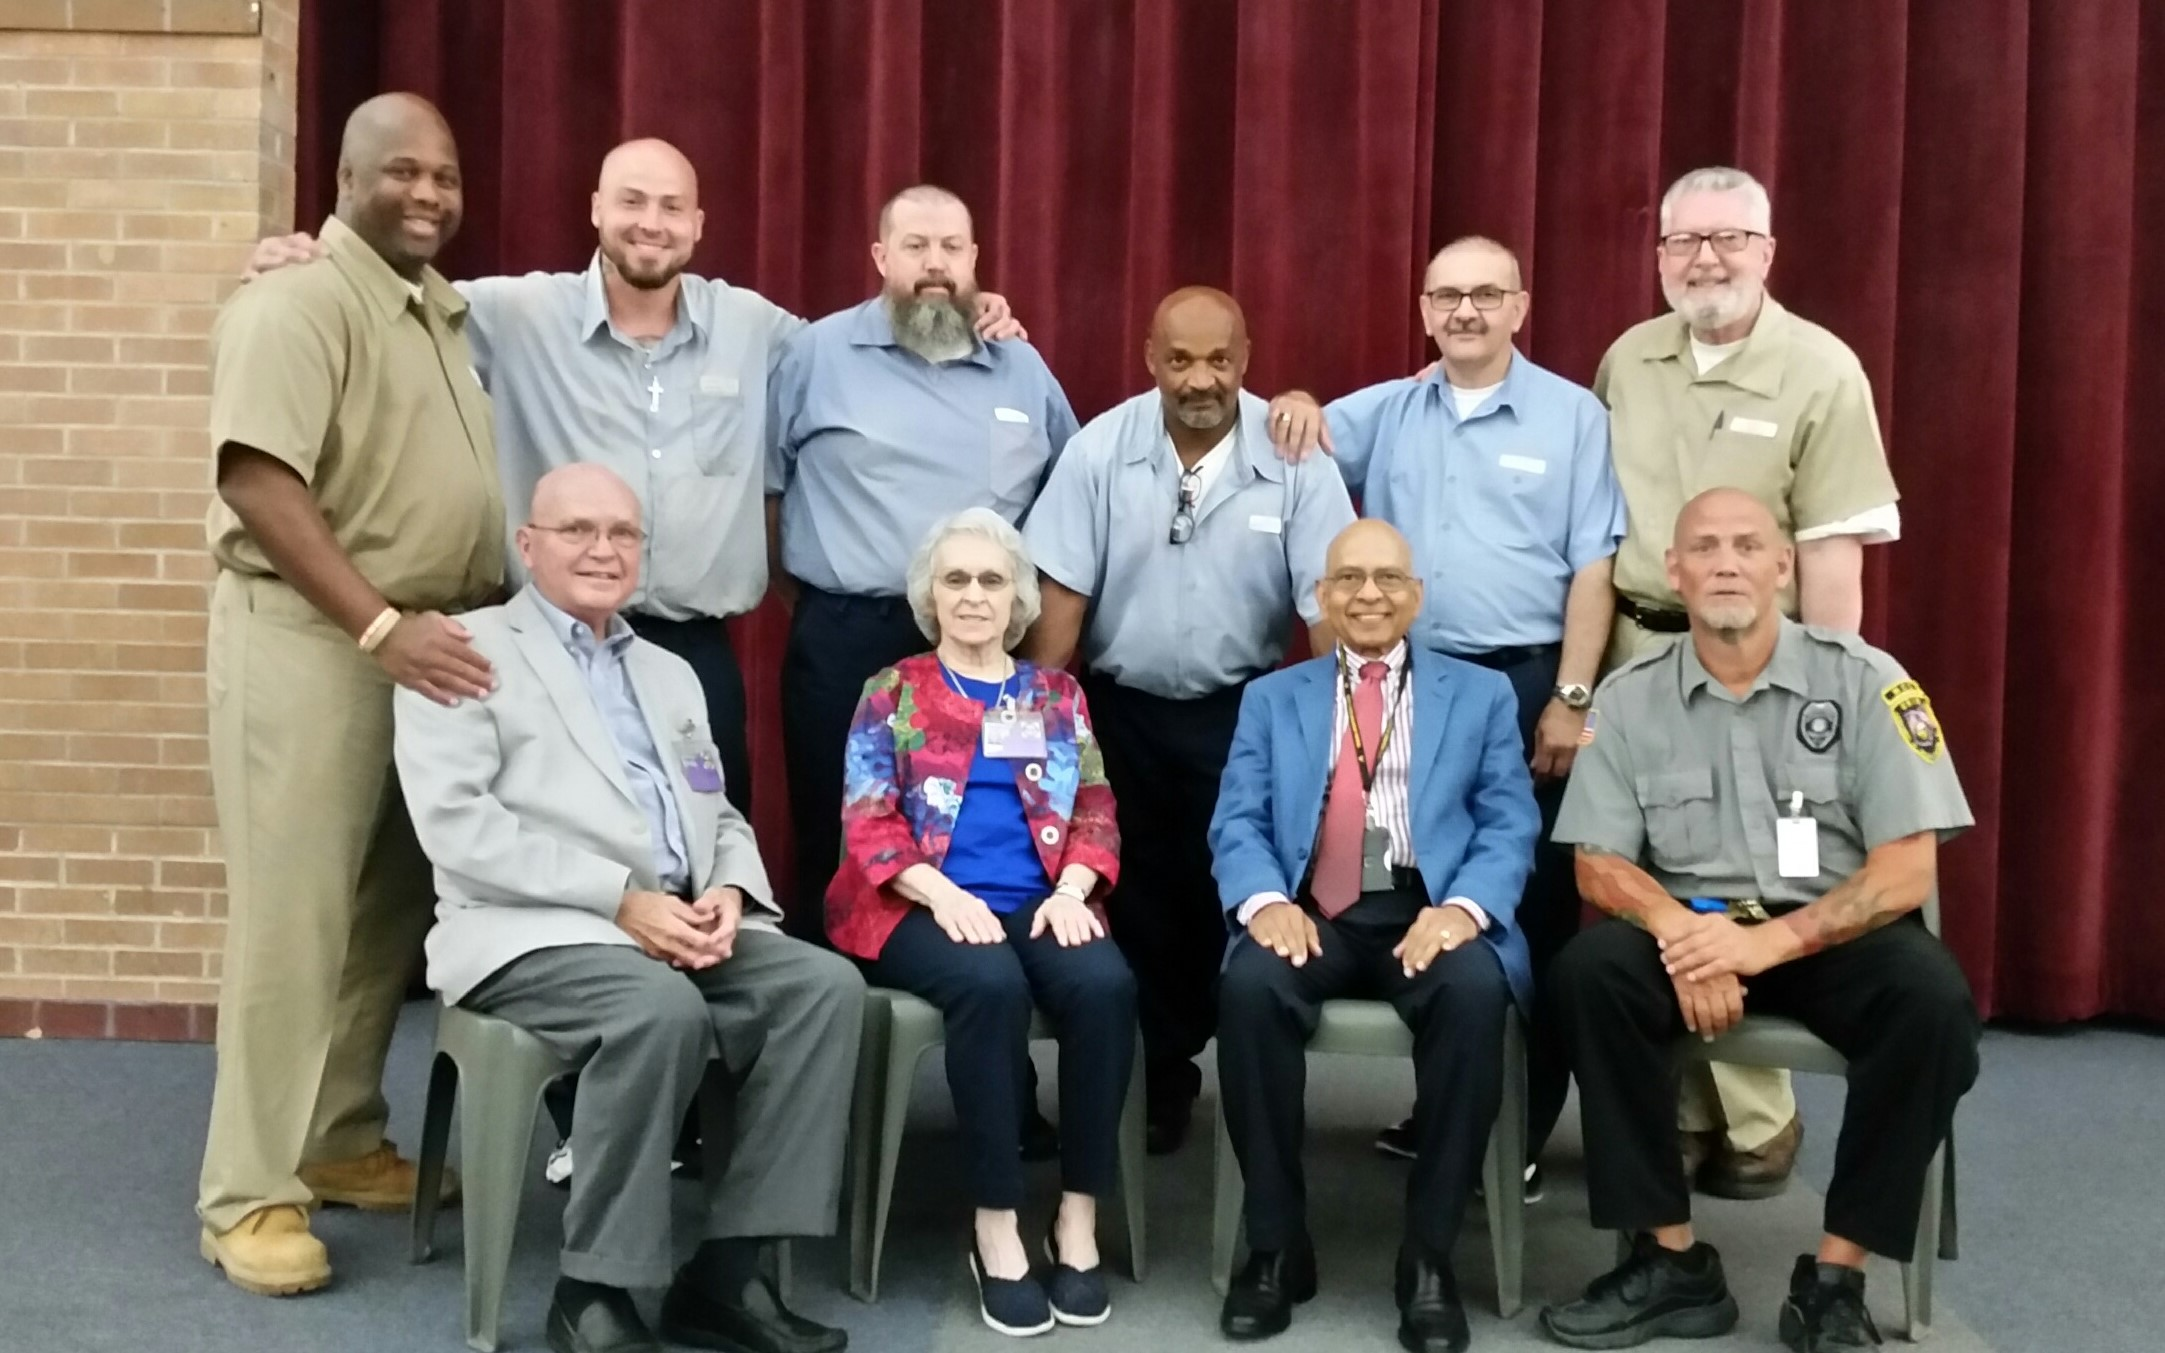 Winebrenner Reunion at Marion Correctional Institution